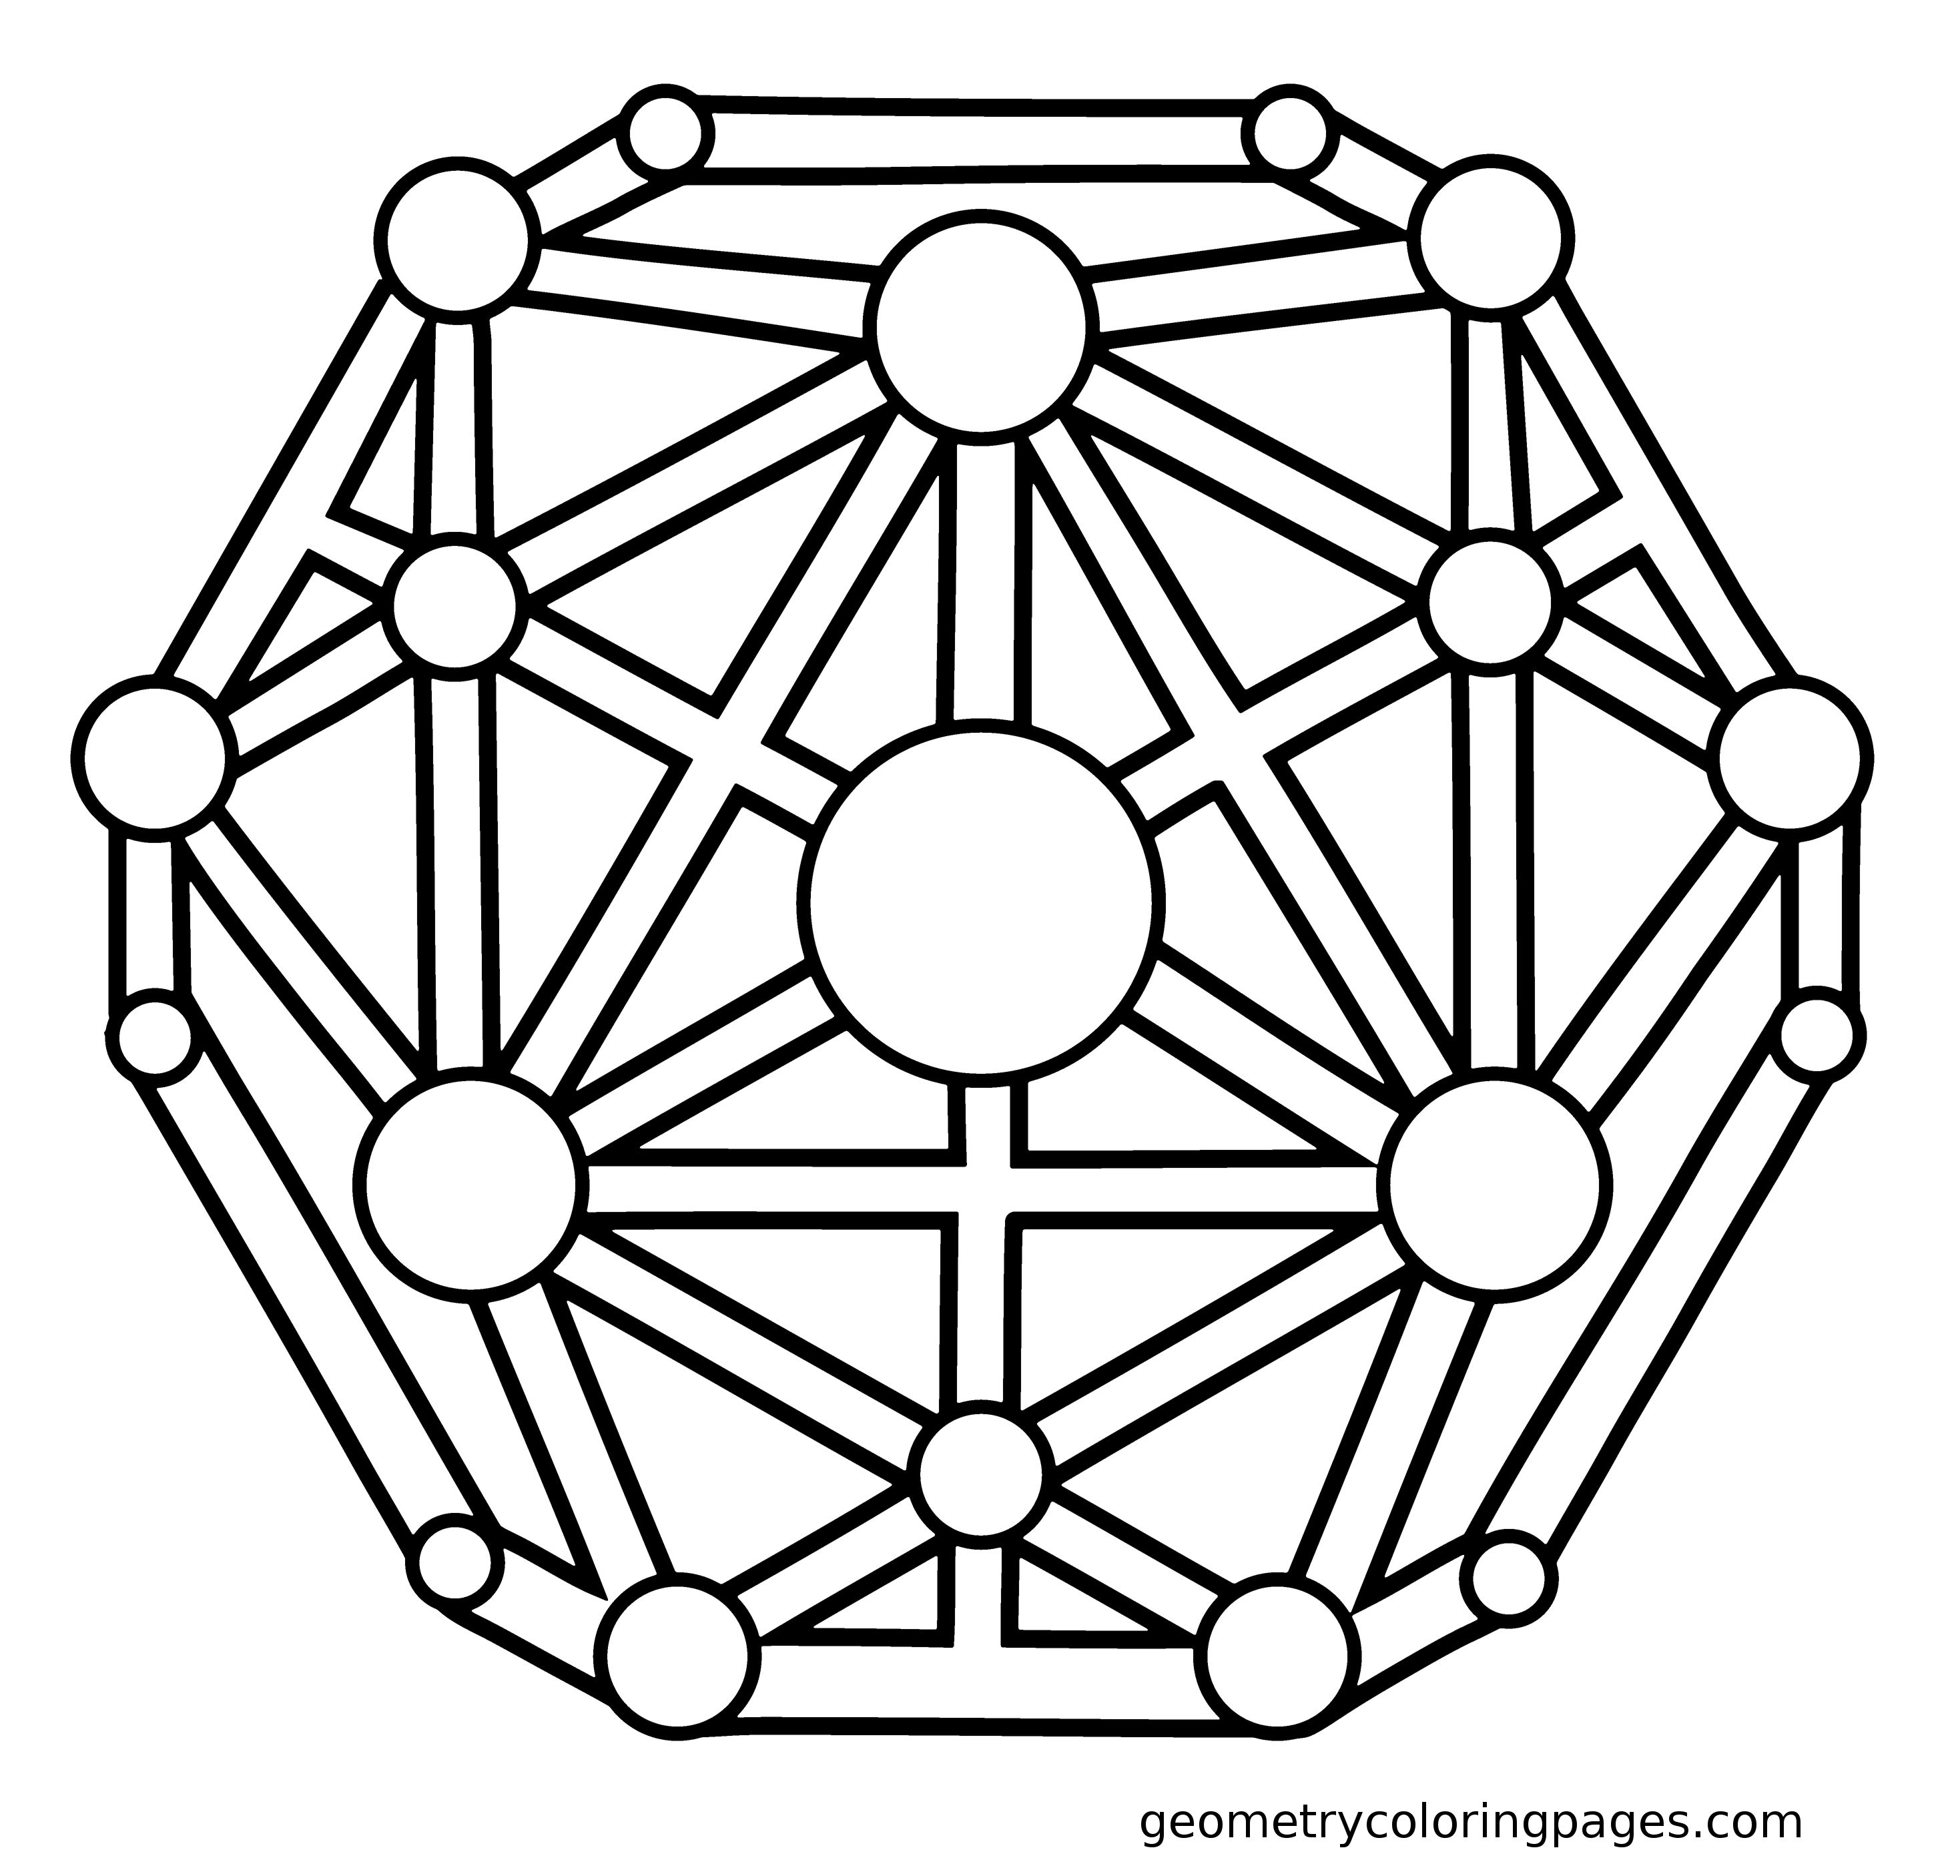 Sacred Geometry Coloring Page, Dodecahedron from geometrycoloringpages.com